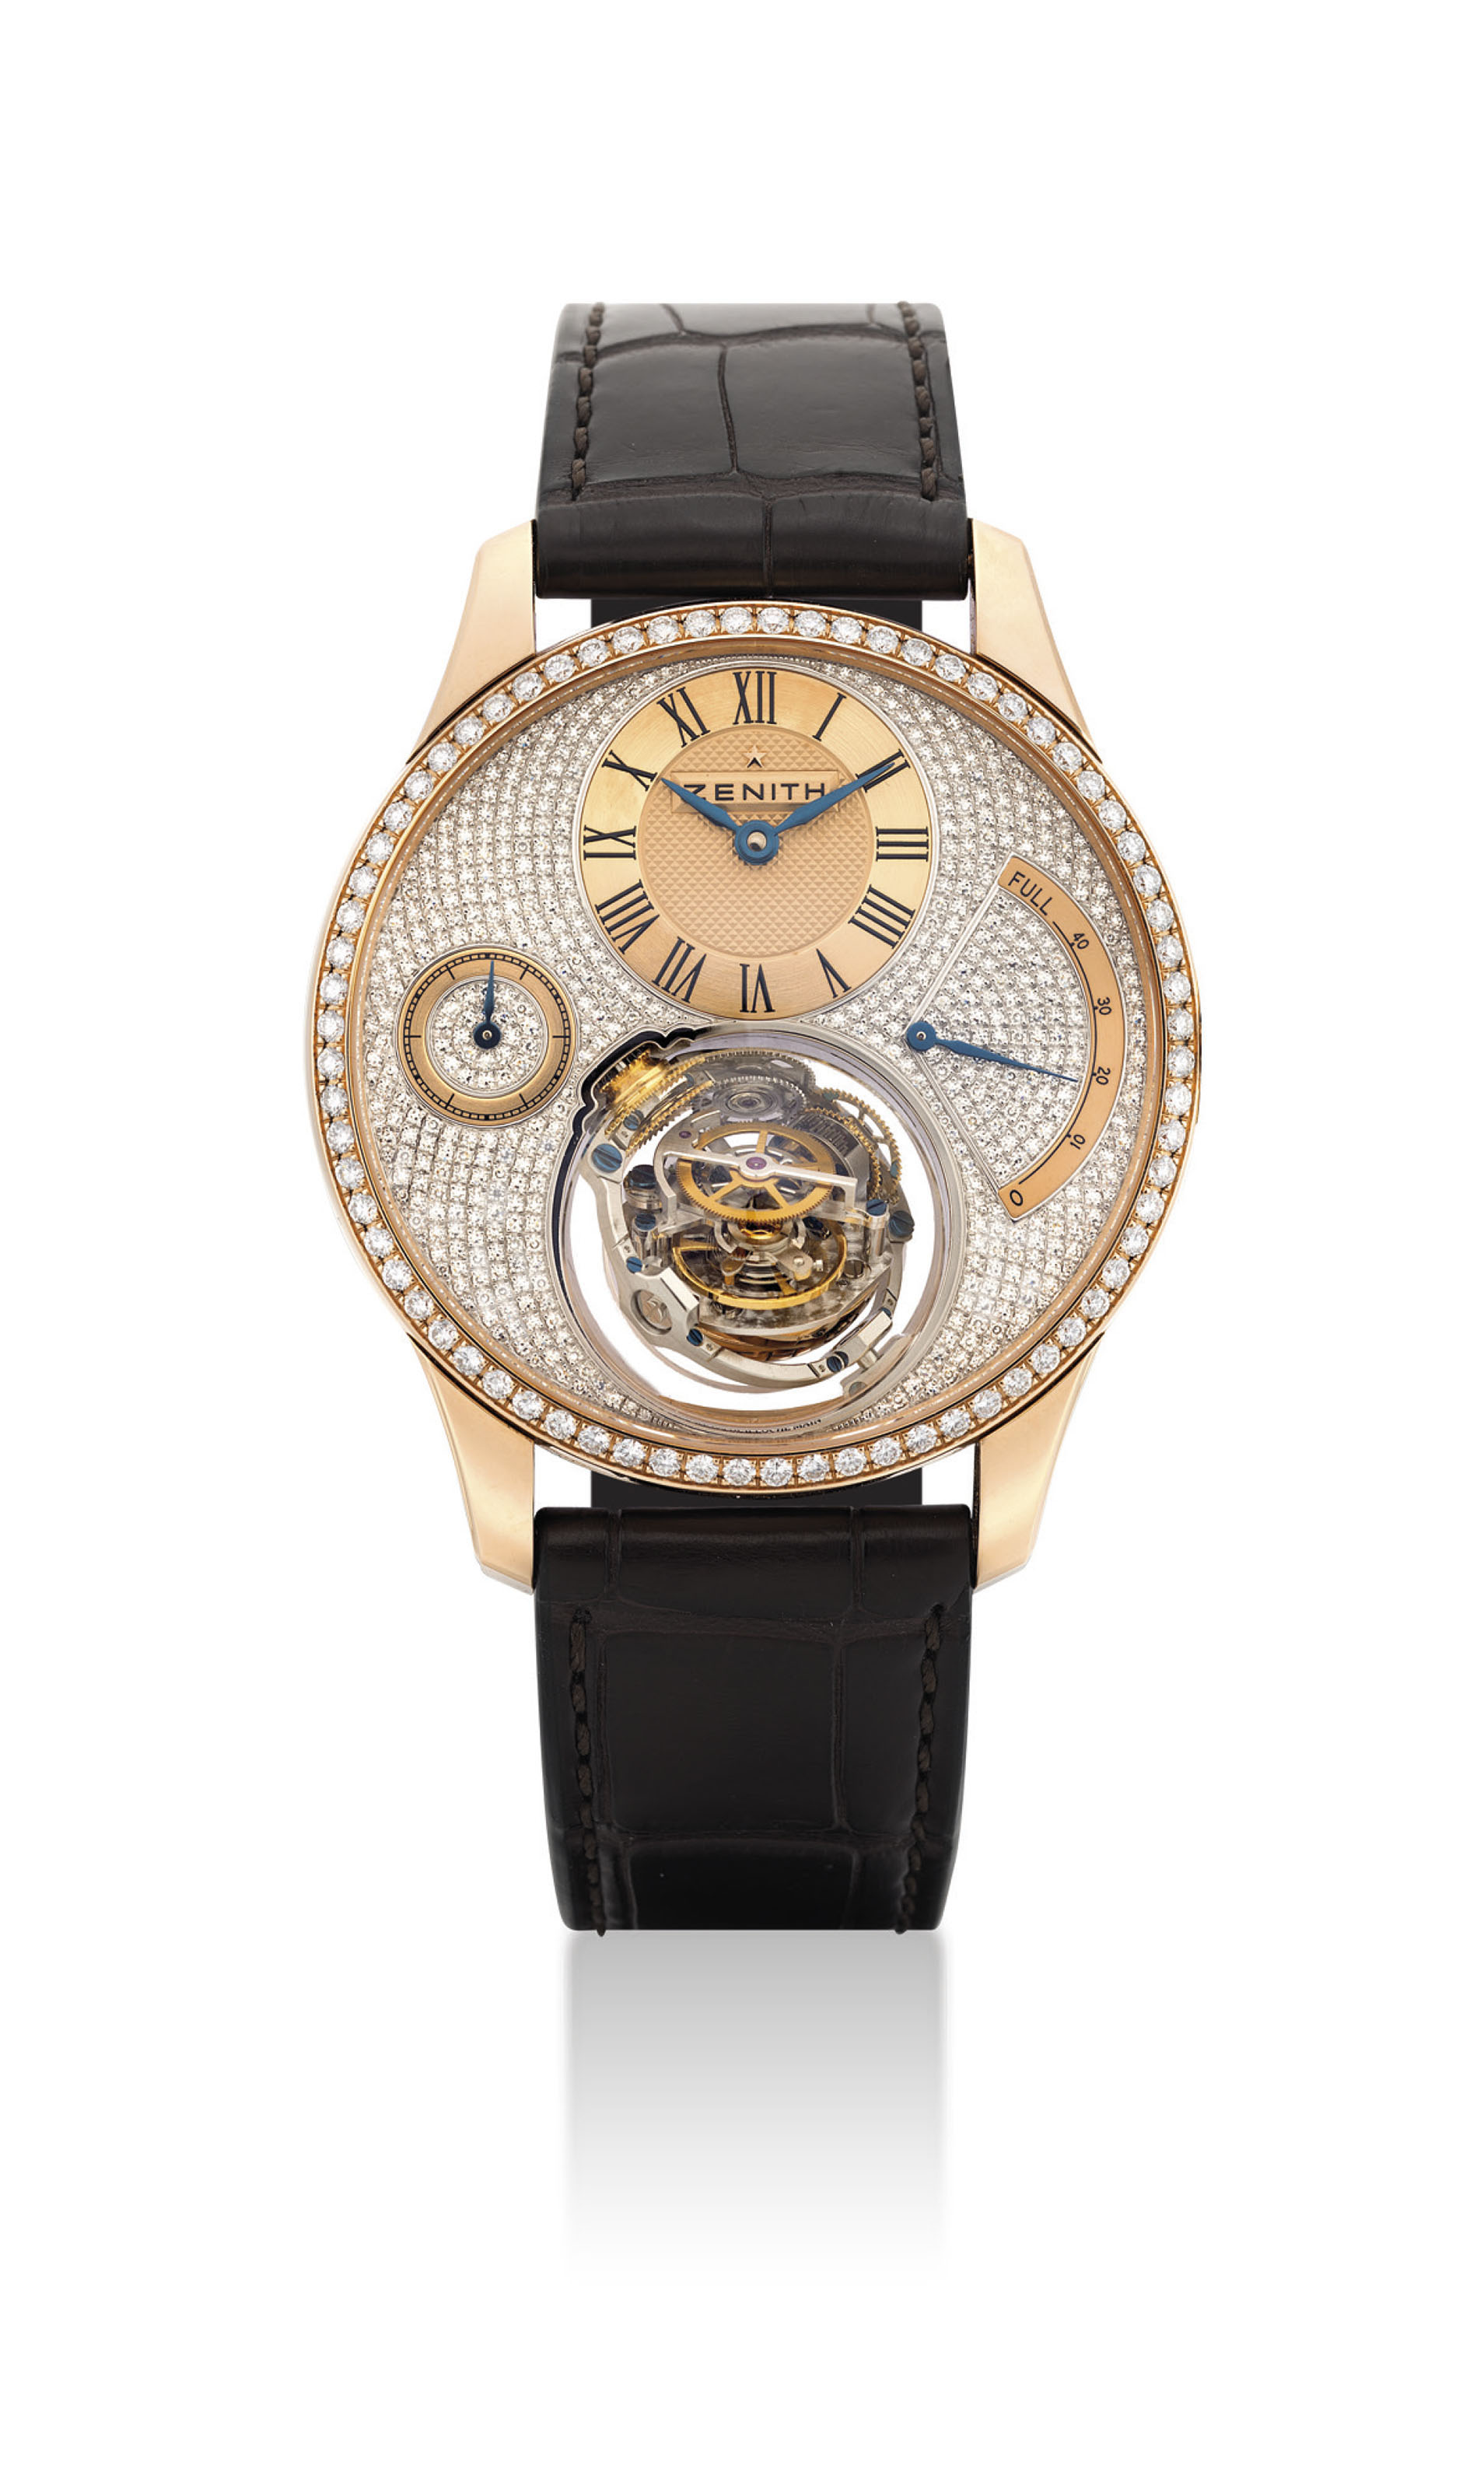 ZENITH. A FINE AND EXTREMELY RARE 18K PINK GOLD AND DIAMOND-SET LIMITED EDITION WRISTWATCH WITH POWER RESERVE AND SELF-REGULATING GRAVITY CONTROL GYROSCOPIC MODULE